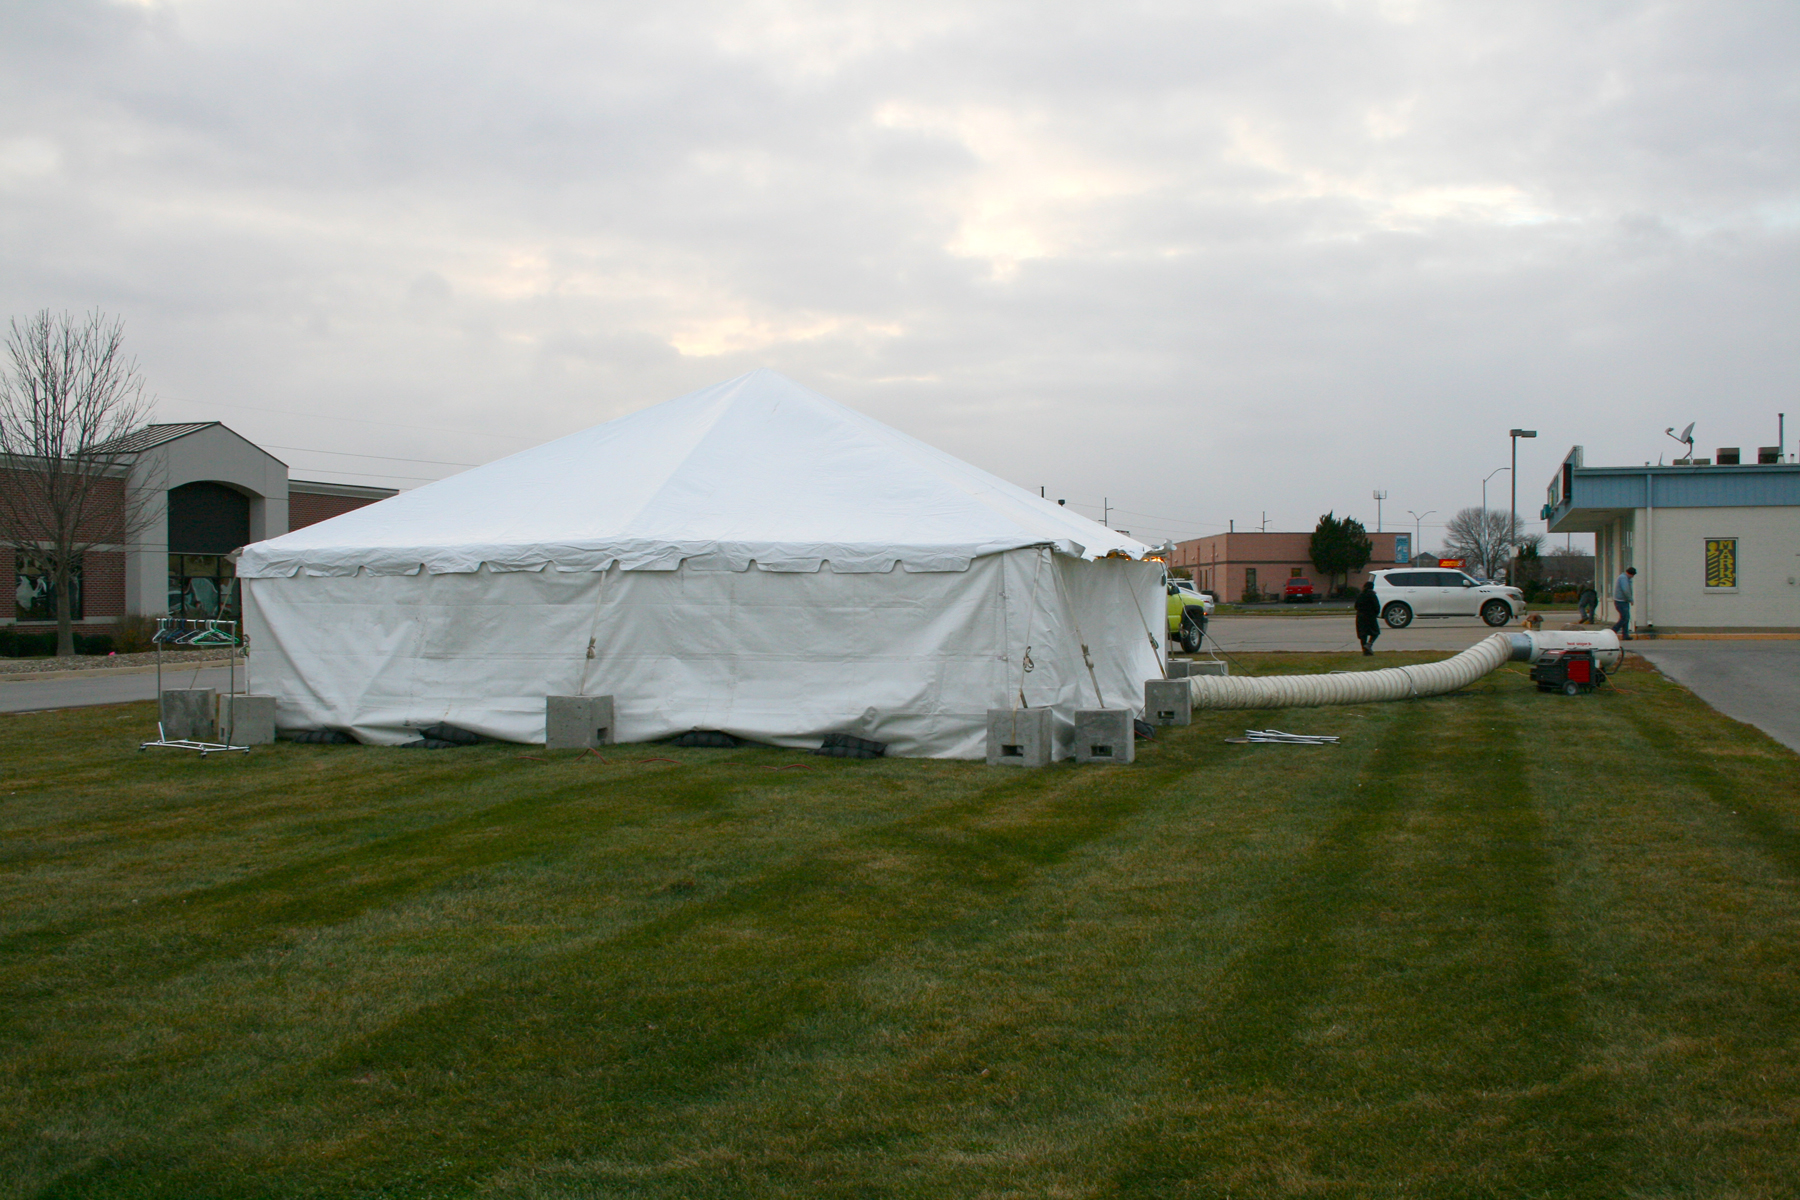 Tent event held in cold weather with diesel tent heater